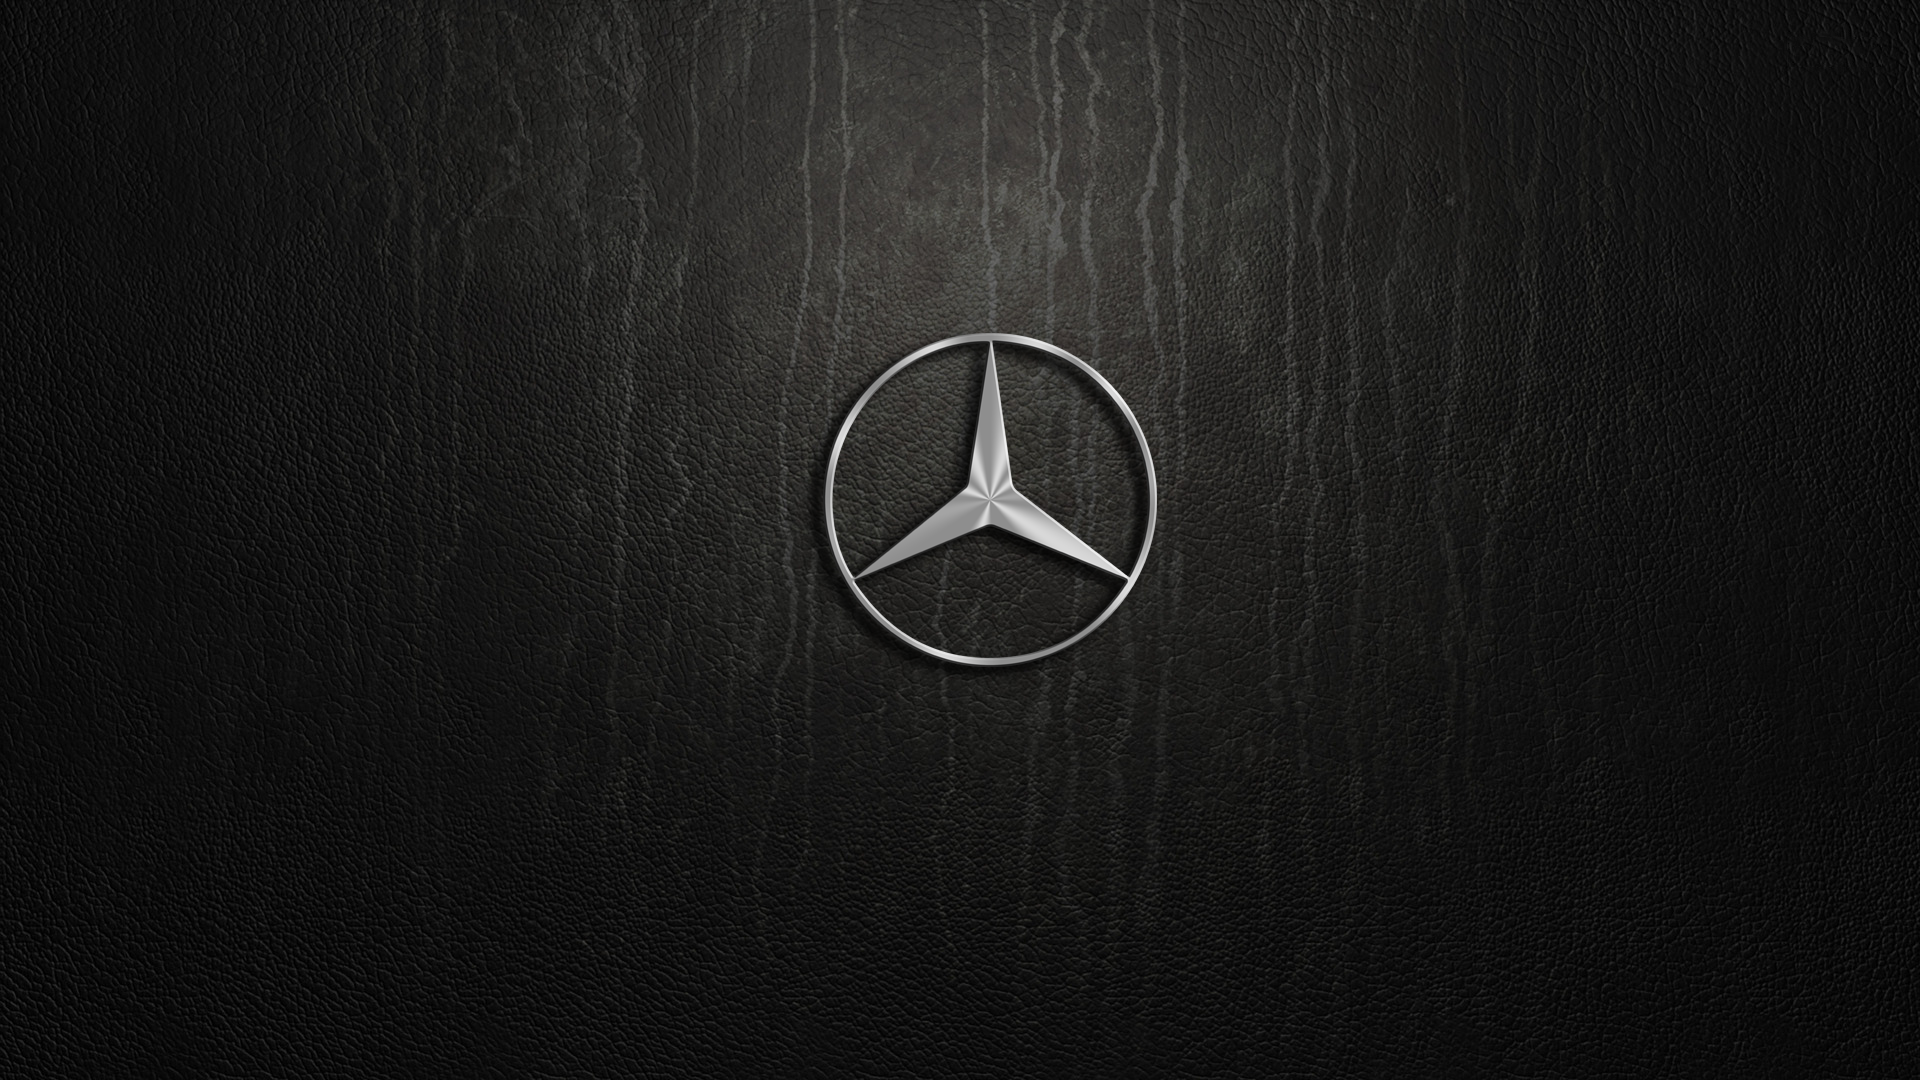 benz logo wallpapers wallpaper - photo #3